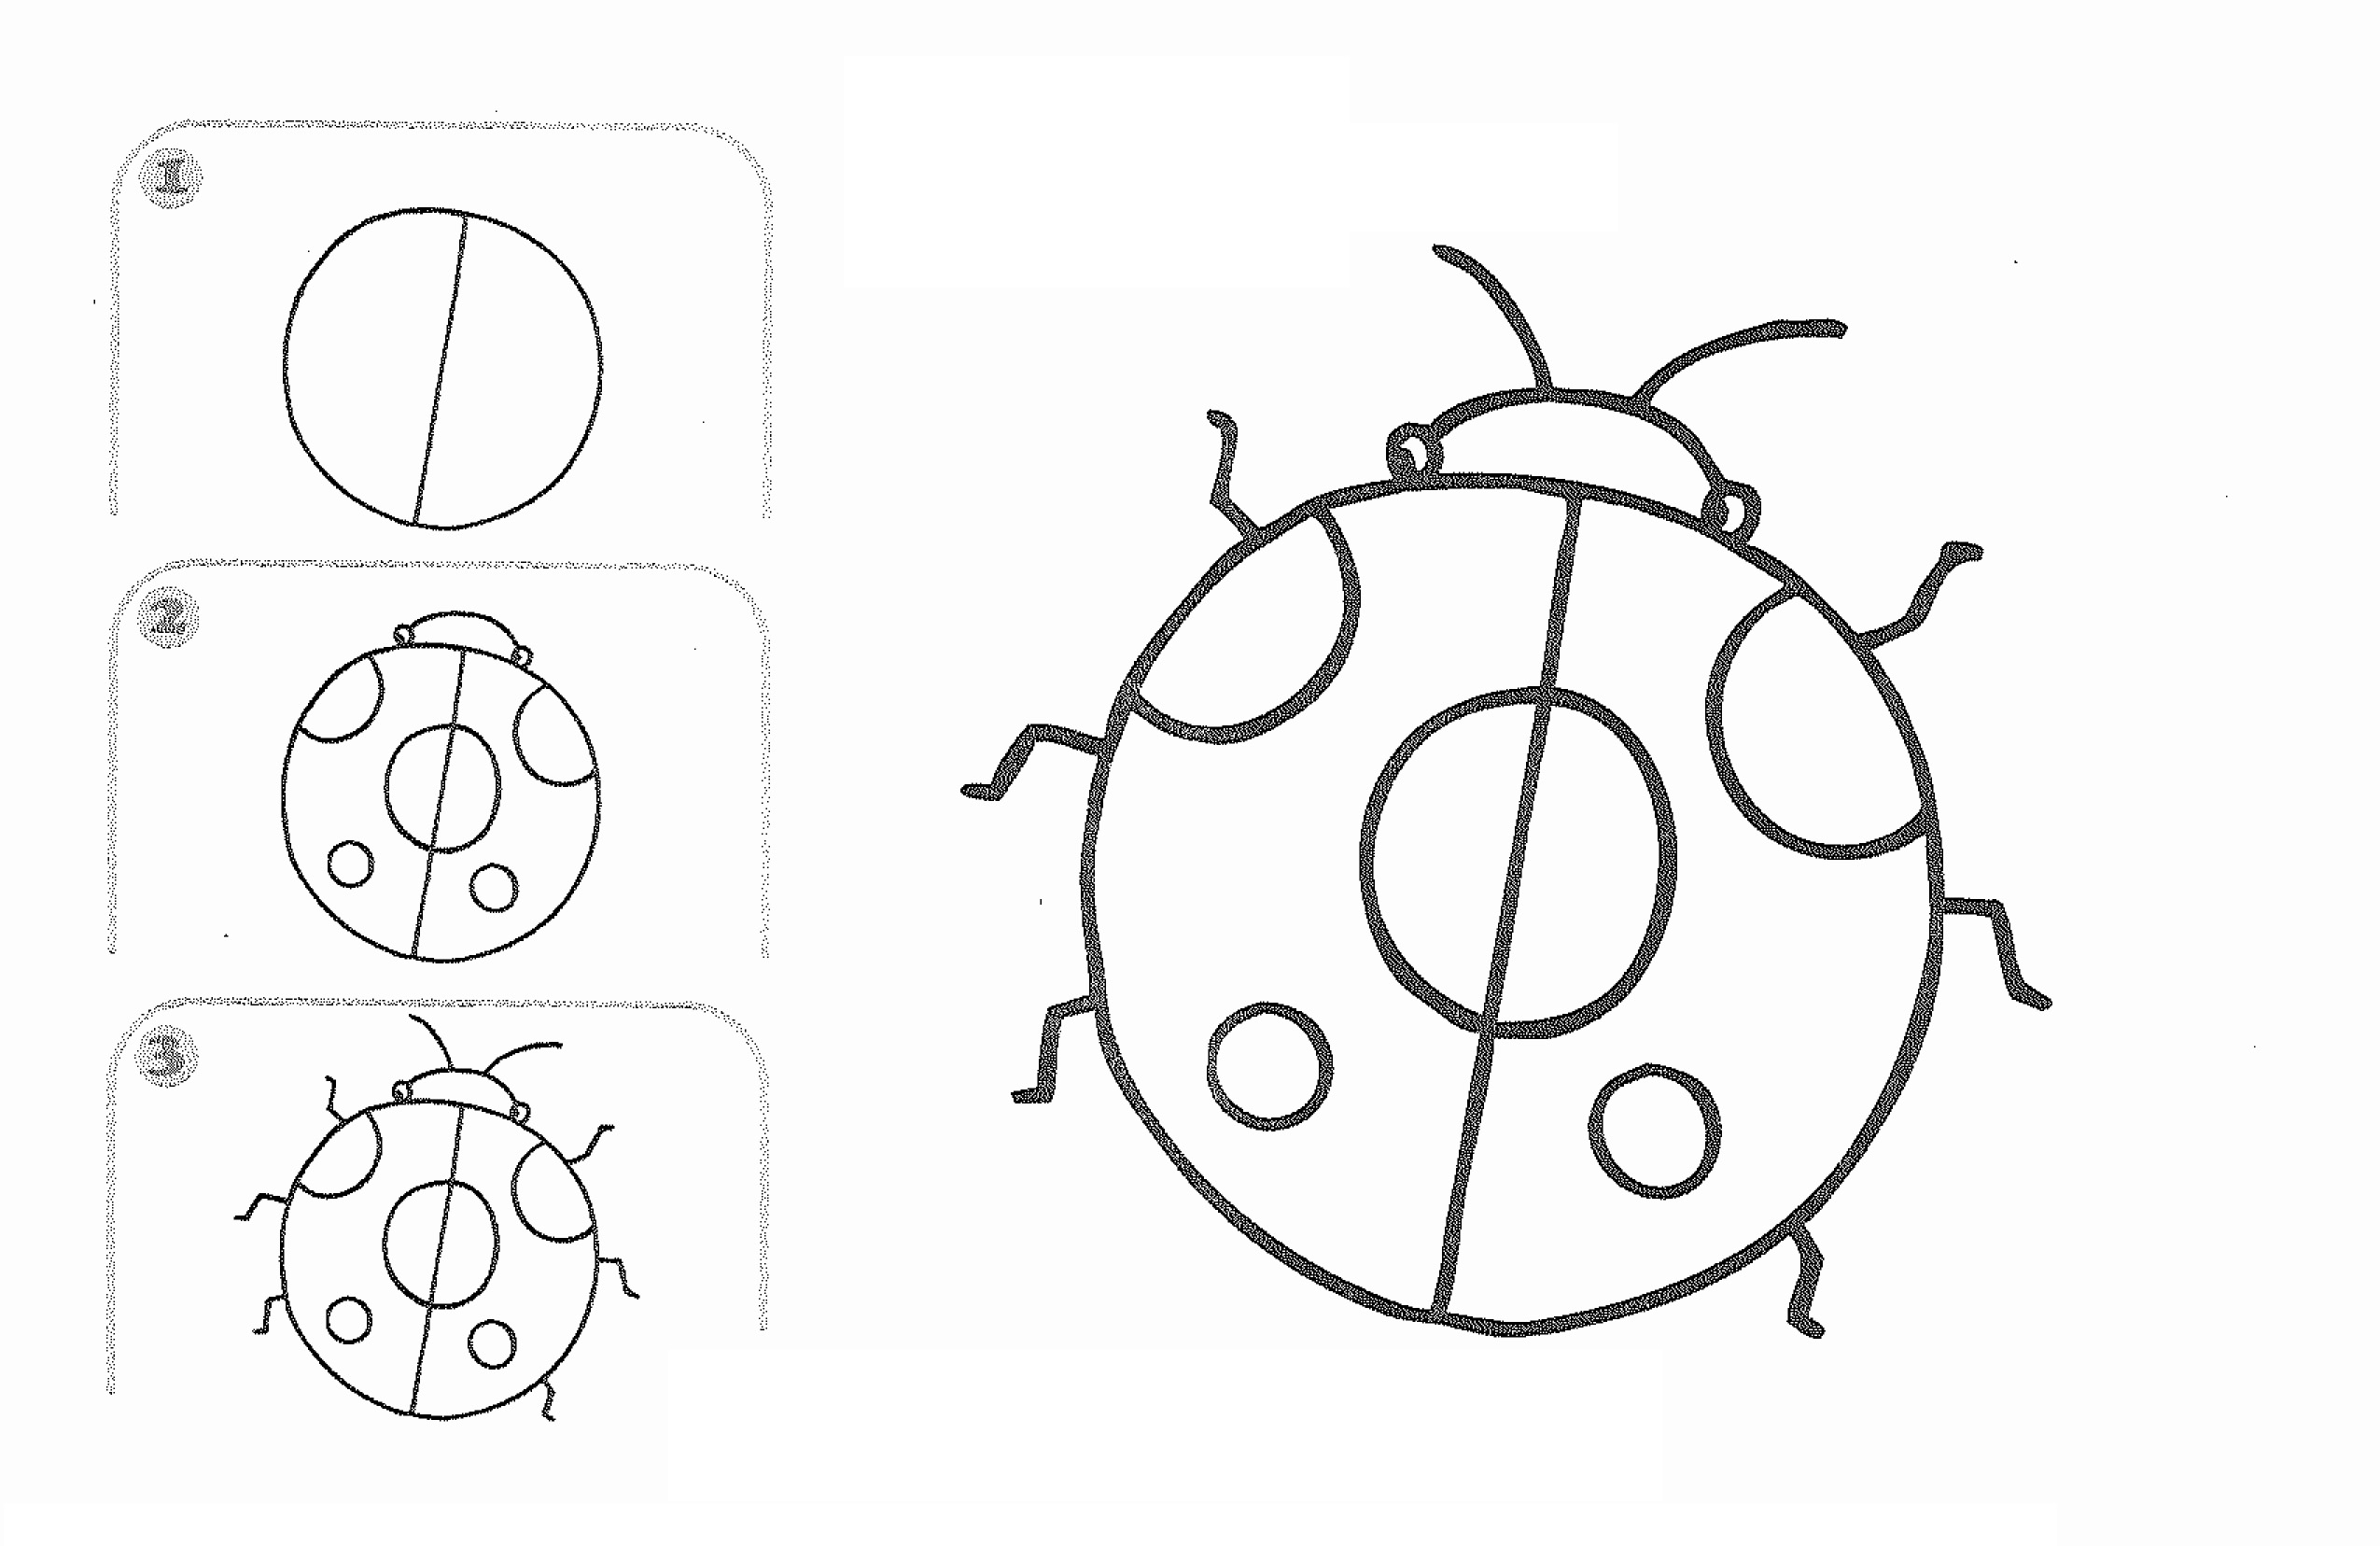 Simple Car Drawing For Kids at GetDrawings.com   Free for personal ...